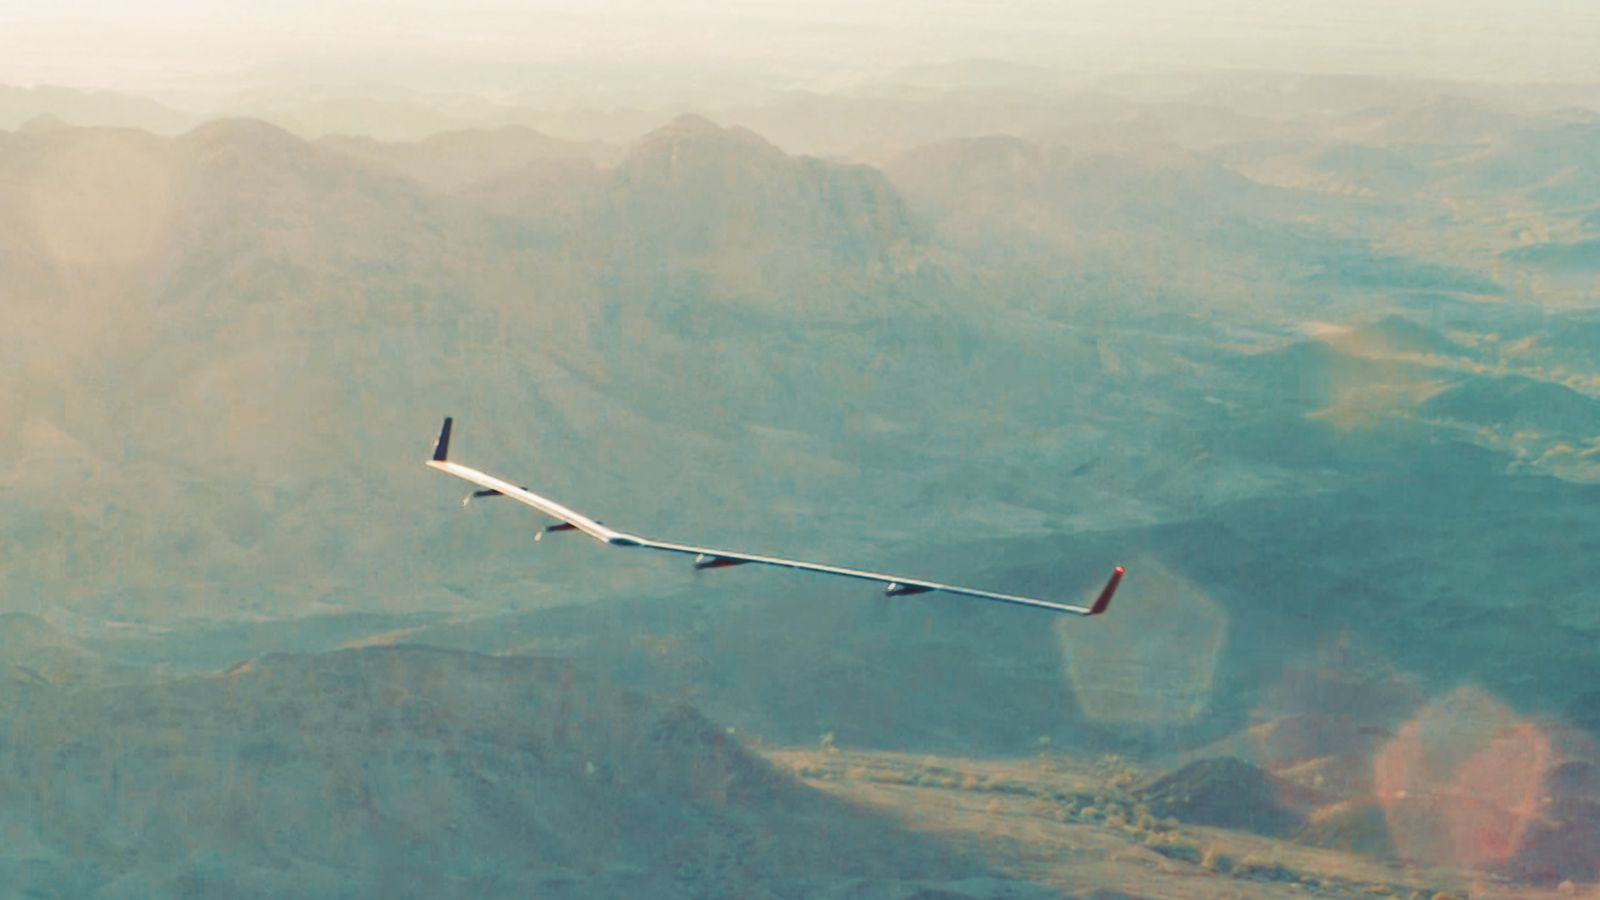 Facebook's Giant Solar-Powered Internet Drone Just Completed Its Maiden Voyage_Image 0